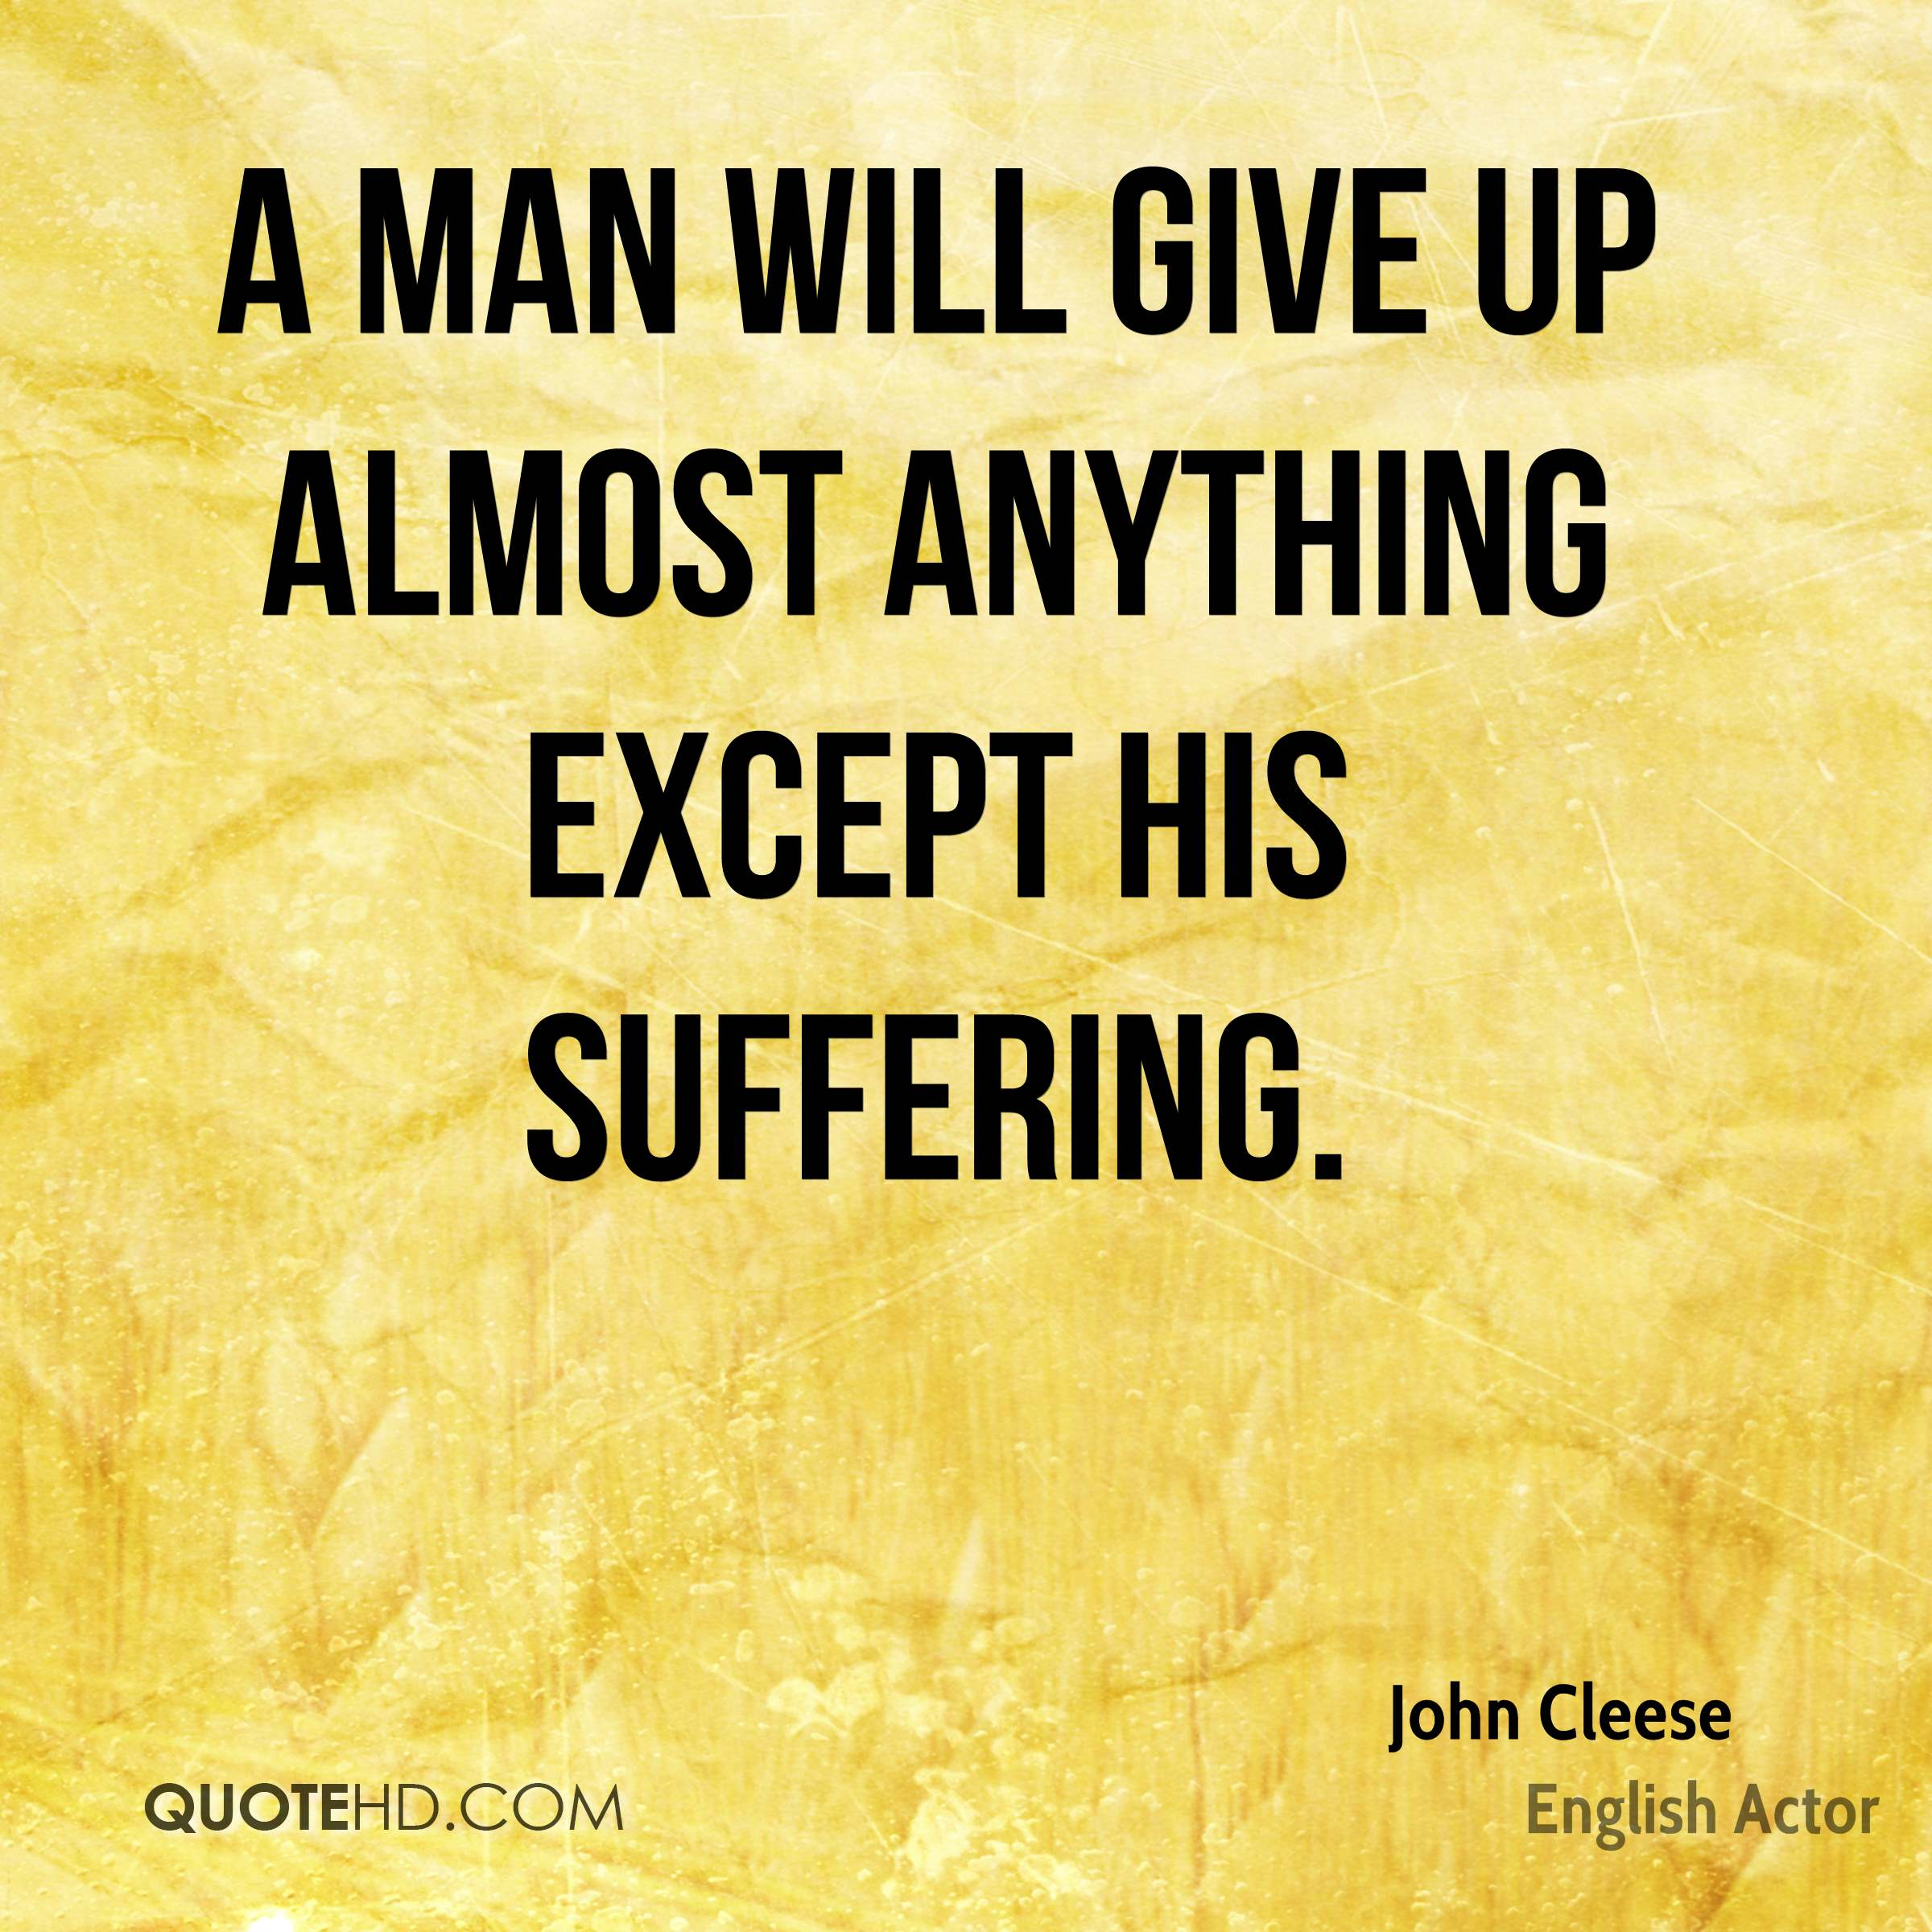 A man will give up almost anything except his suffering.